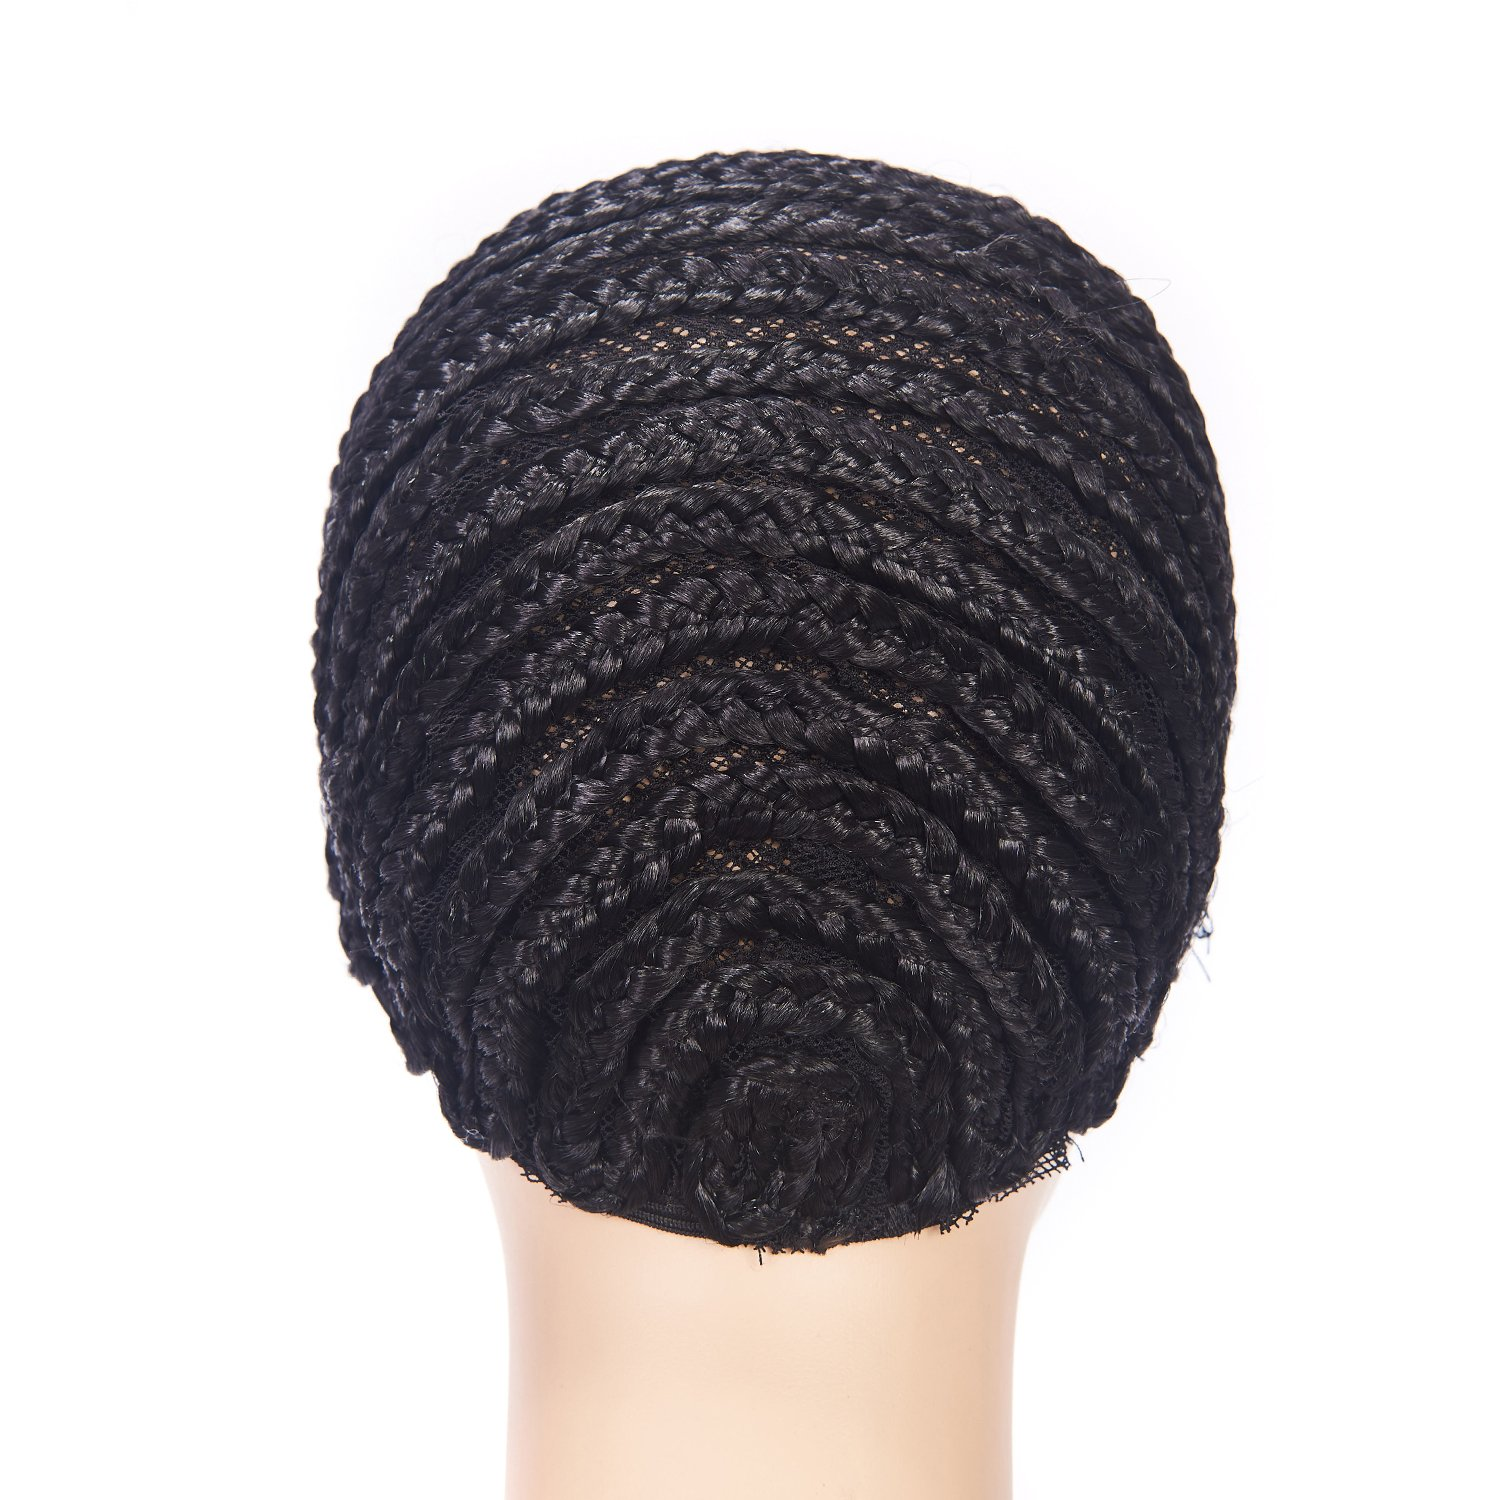 Clip in Braided Wig Caps Crochet Cornrow Cap For Easier Sew In Cap for Making Wigs Adjustable Crochet Wig Cap with 1 Free Hook Needle (L) by XFX Hair (Image #3)